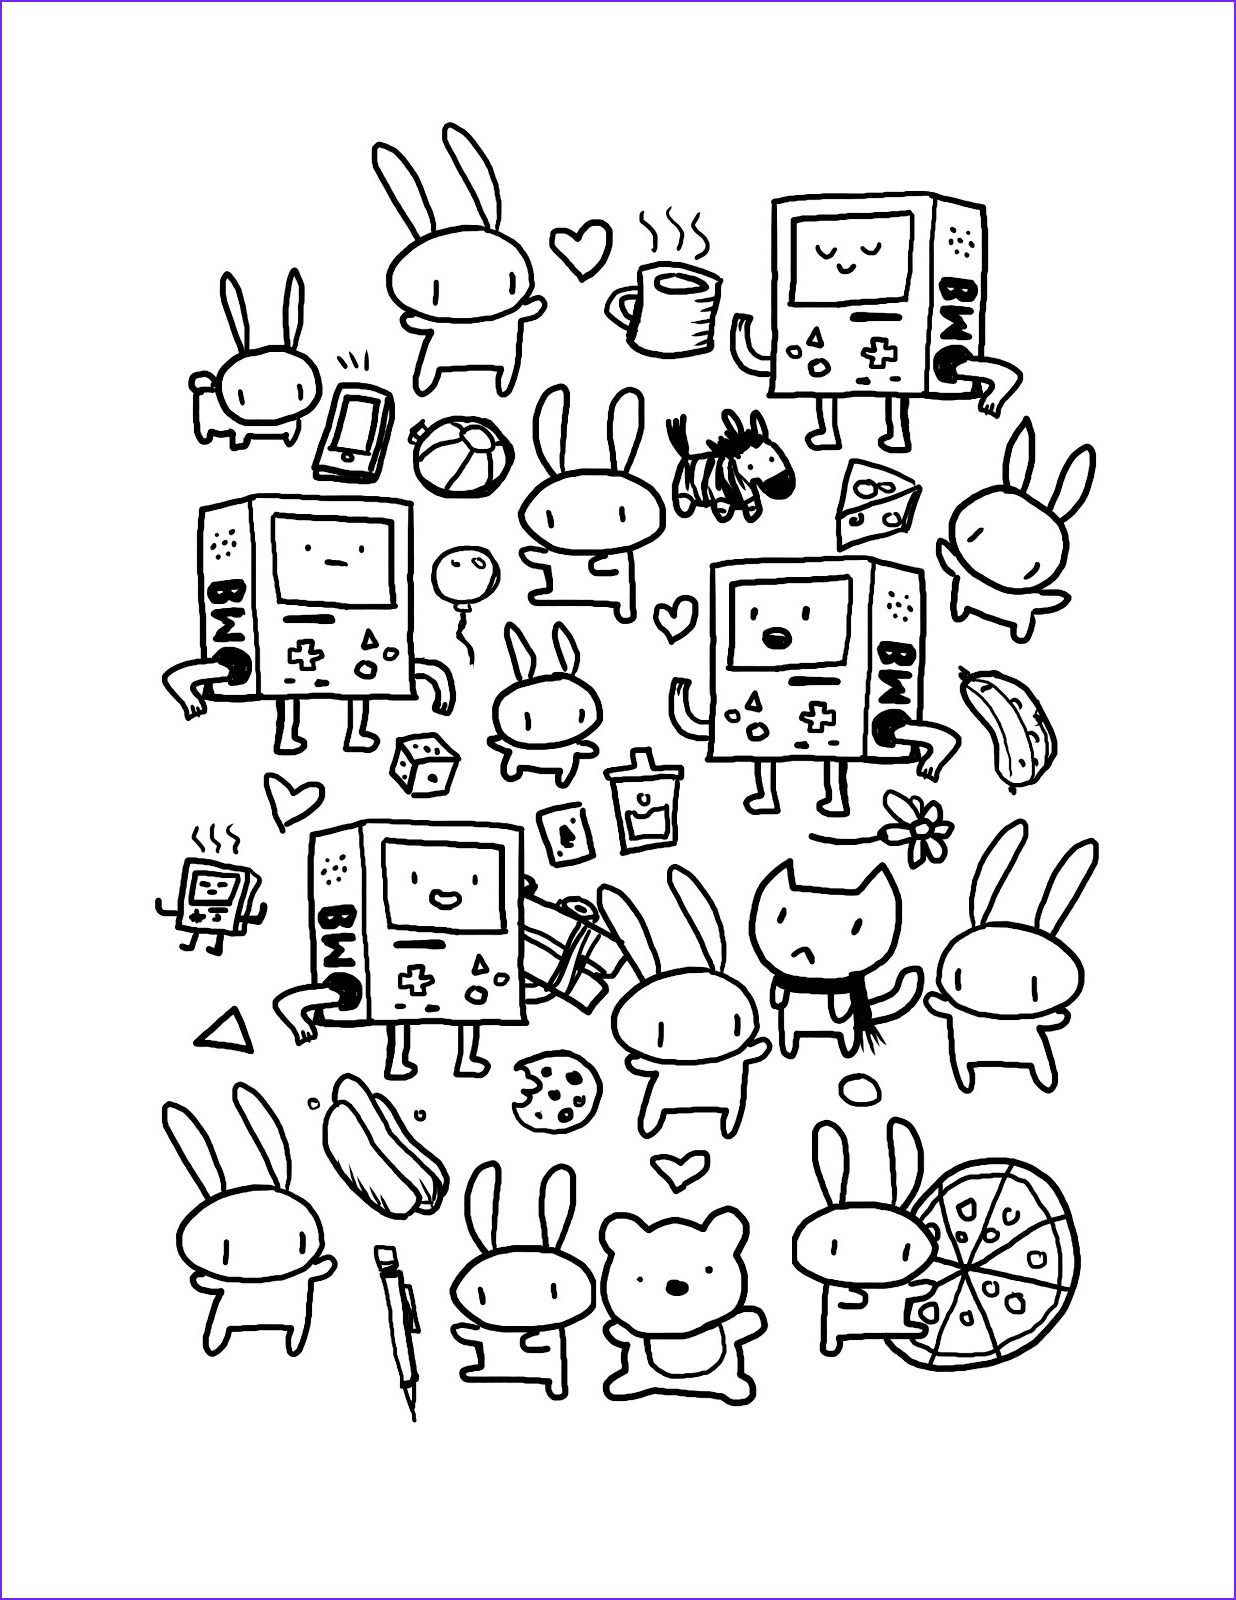 Doodle Coloring Pages Unique Gallery Quality Doodles by Kyle Ruby Coloring Page